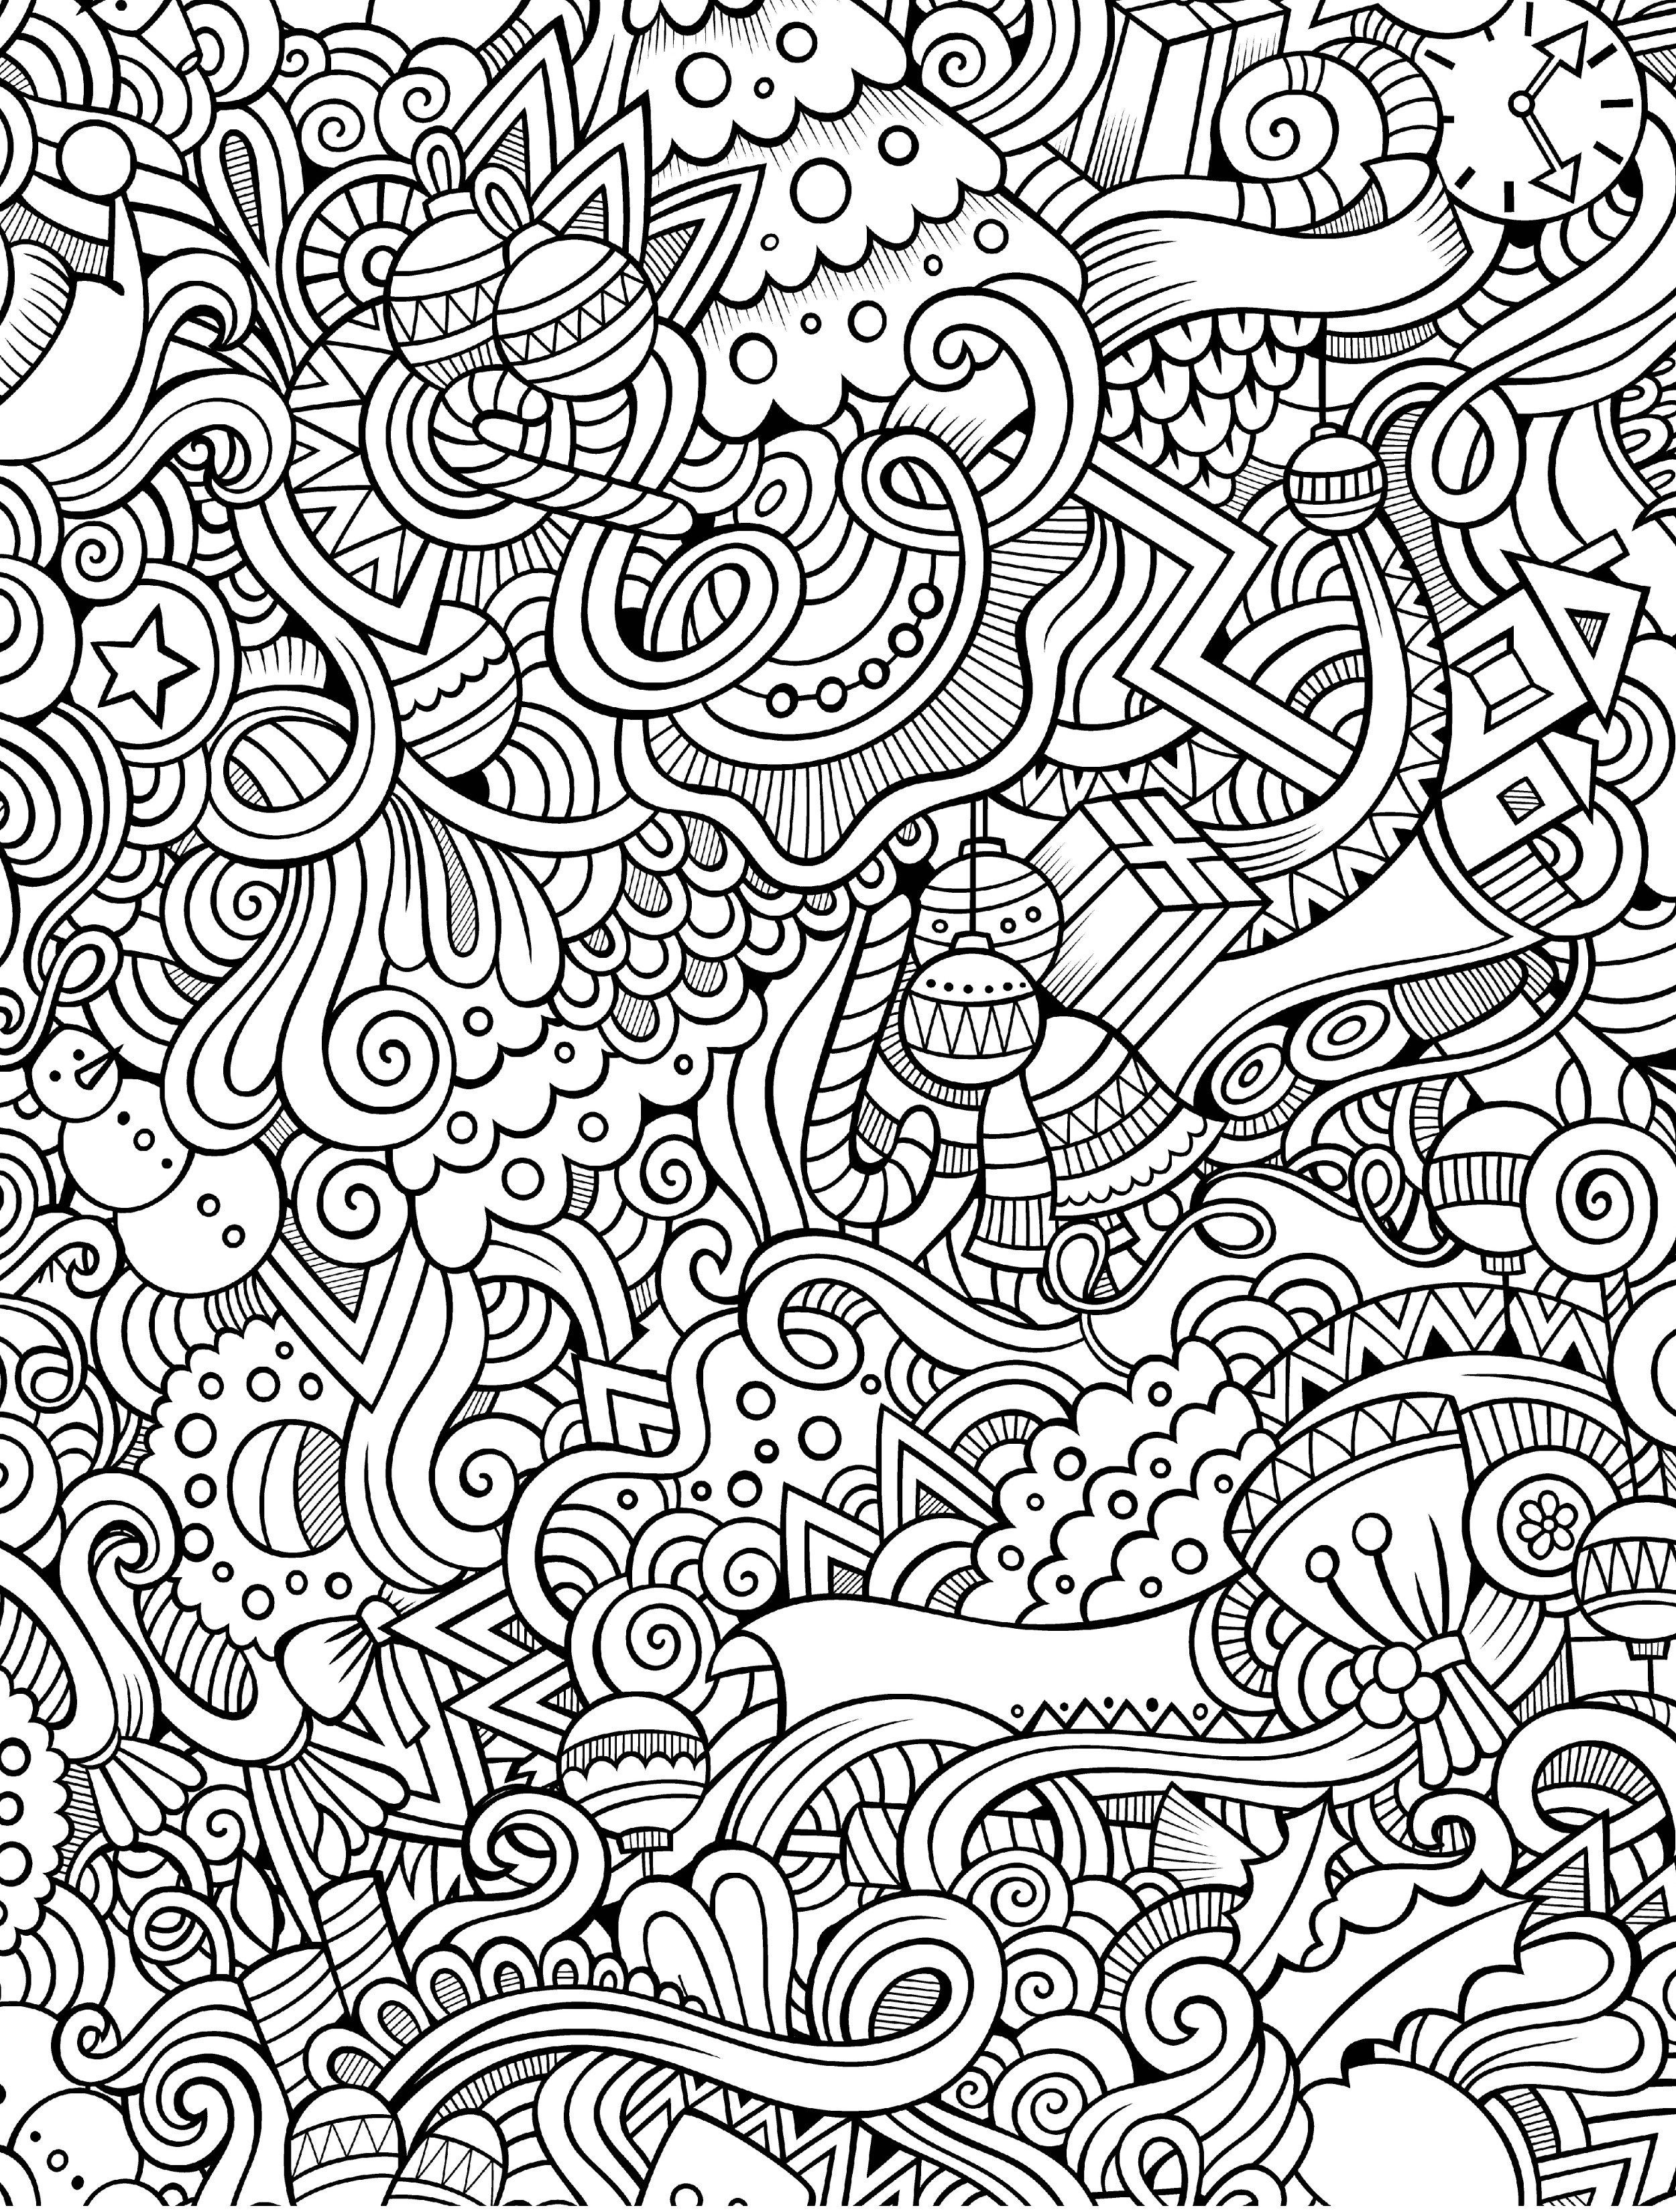 10 Free Printable Holiday Adult Coloring Pages | Coloring Pages - Free Printable Coloring Pages For Adults